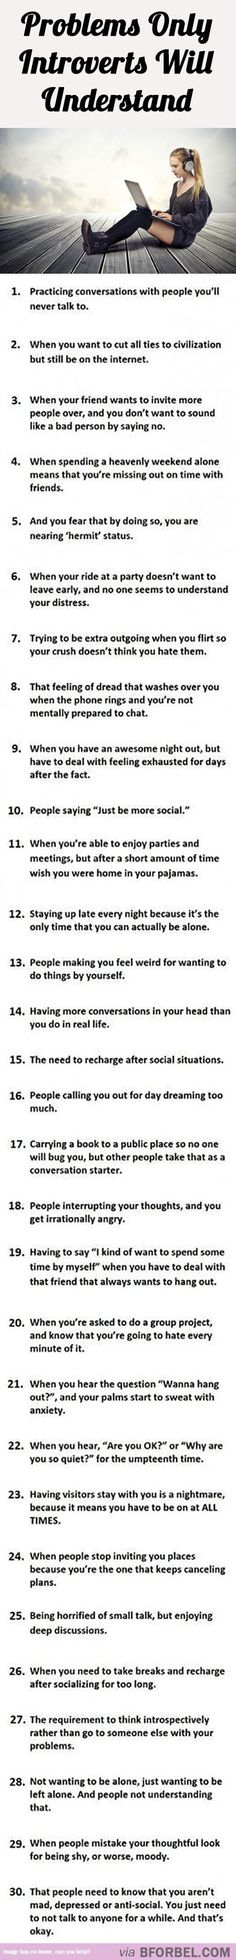 Truth!// number 12 is exactly right. I'm such a night owl and I absolutely love being up late with everyone else in the house asleep.